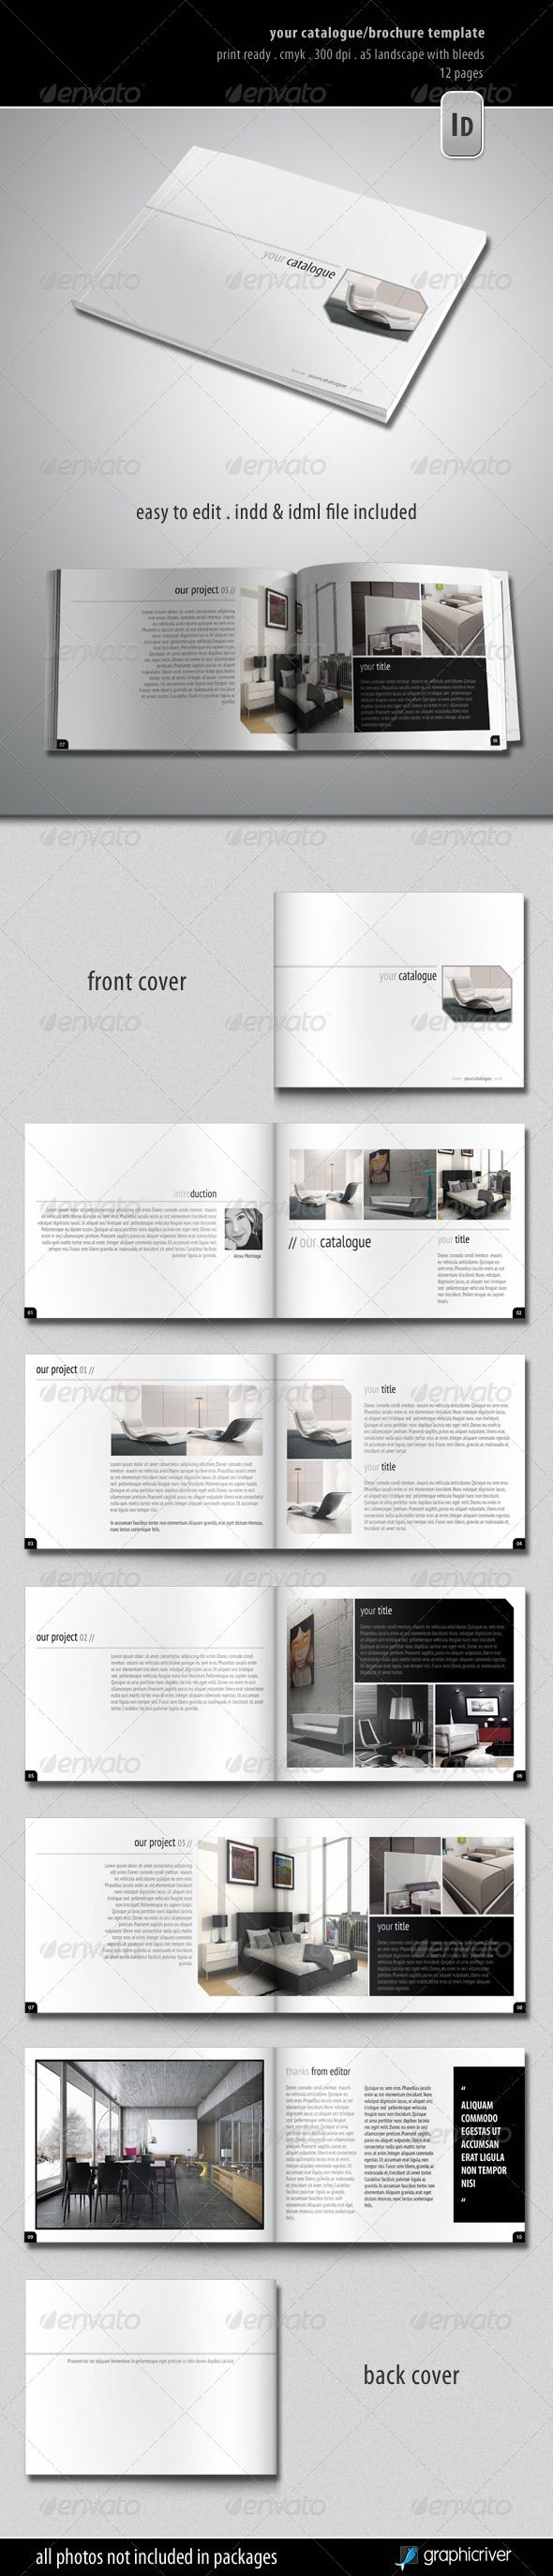 107 best ~ Brochure Design ~ images on Pinterest